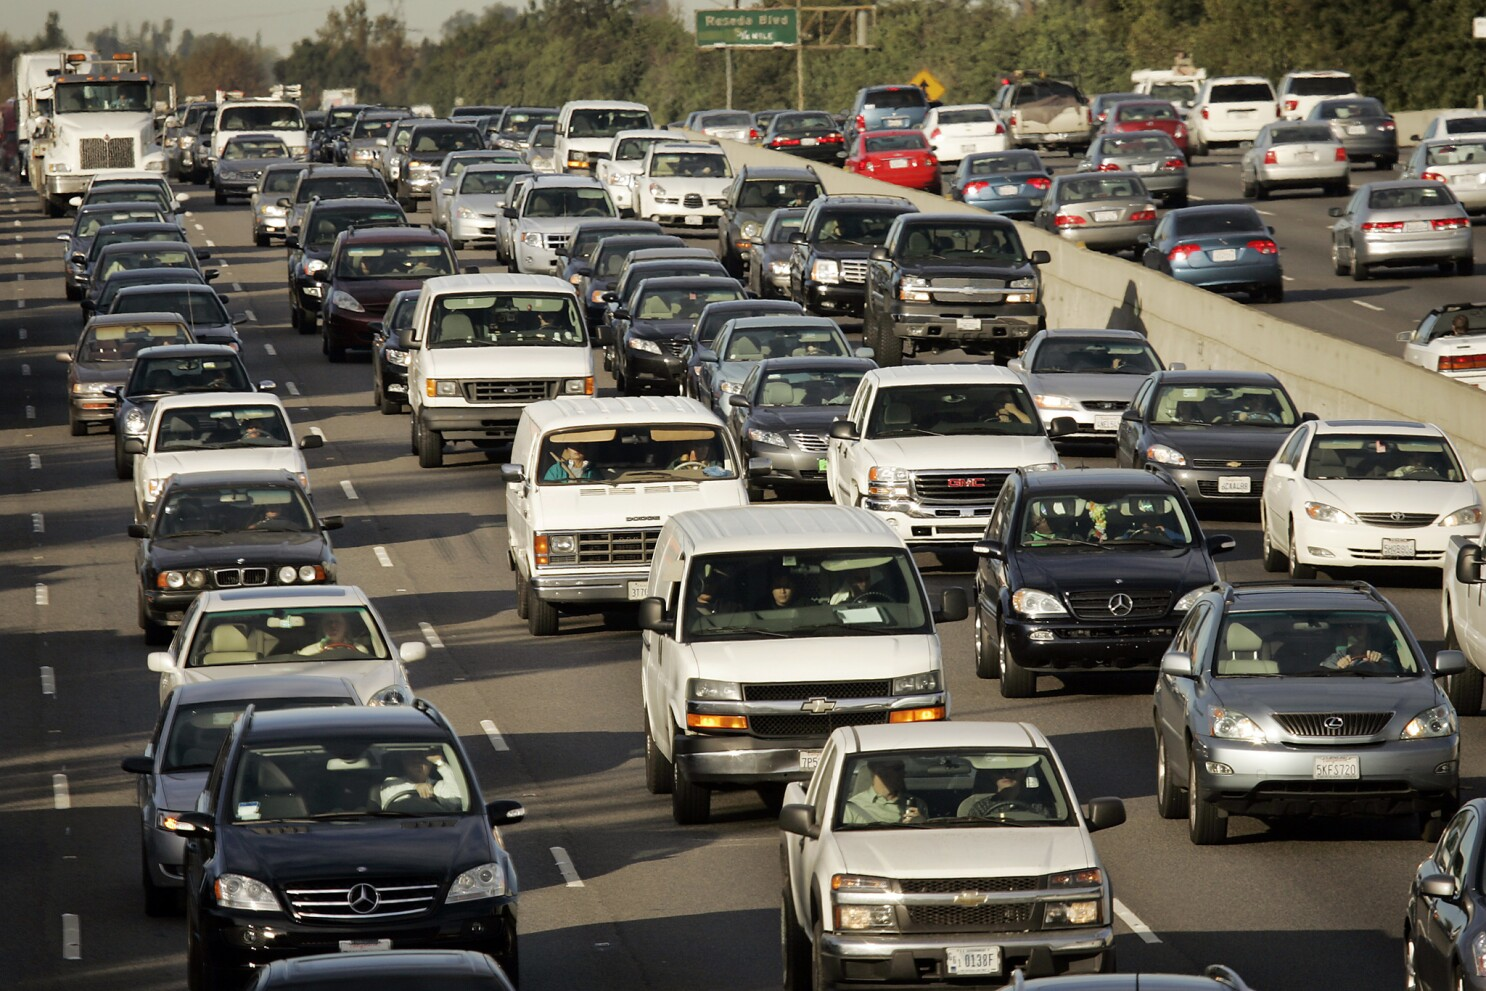 California To Ban New Gas Powered Car Sales By 2035 Q A The San Diego Union Tribune